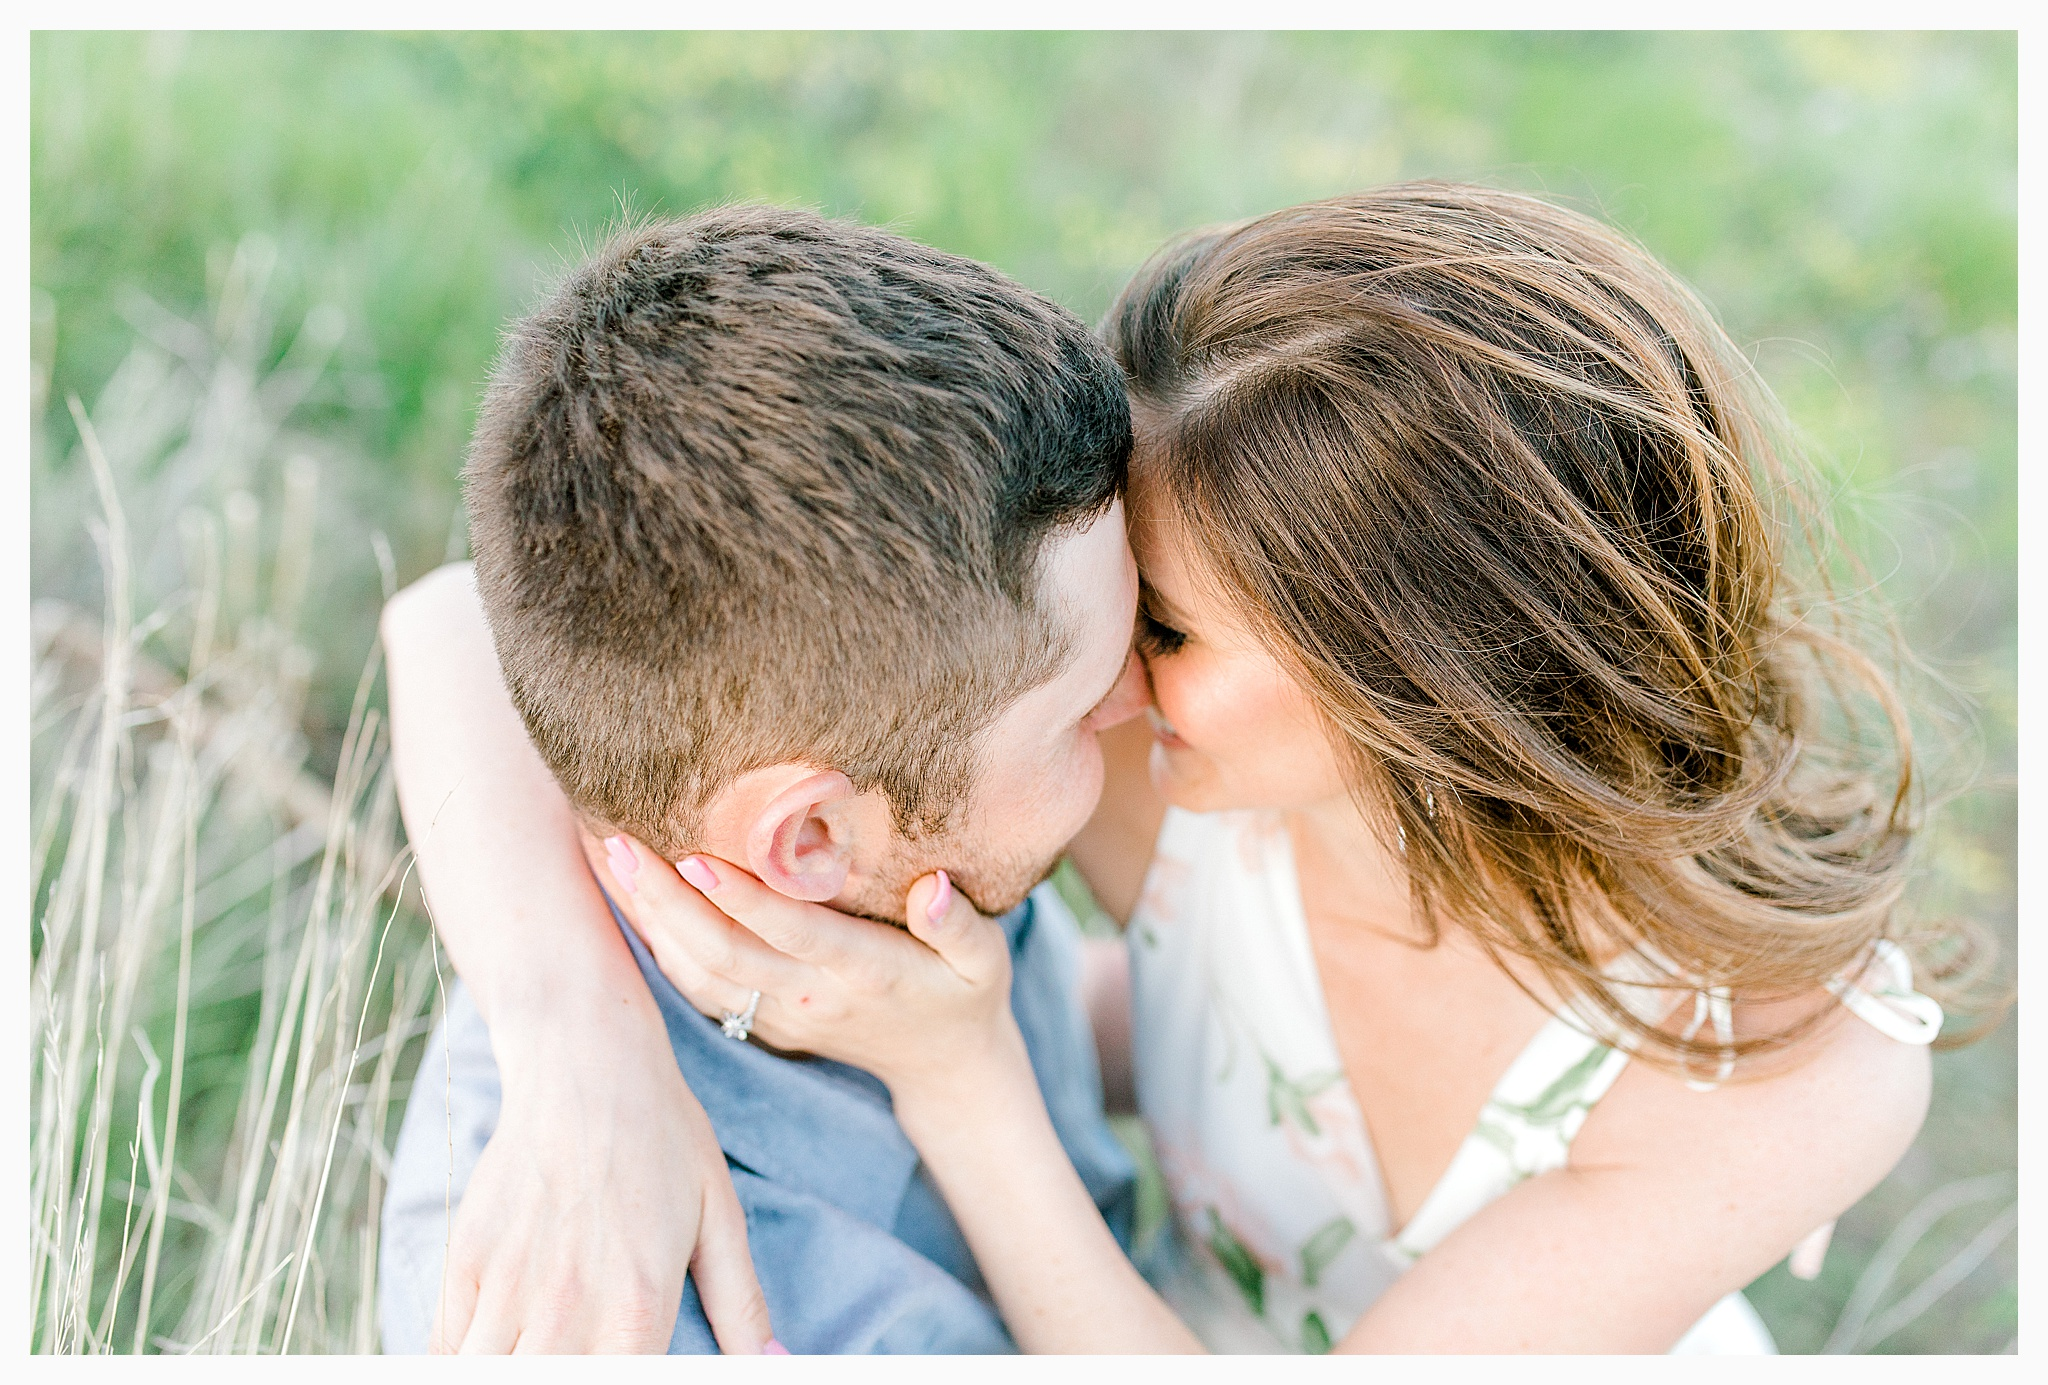 Engagement session amongst the wildflowers in Wenatchee, Washington | Engagement Session Outfit Inspiration for Wedding Photography with Emma Rose Company | Light and Airy PNW Photographer, Seattle Bride_0023.jpg